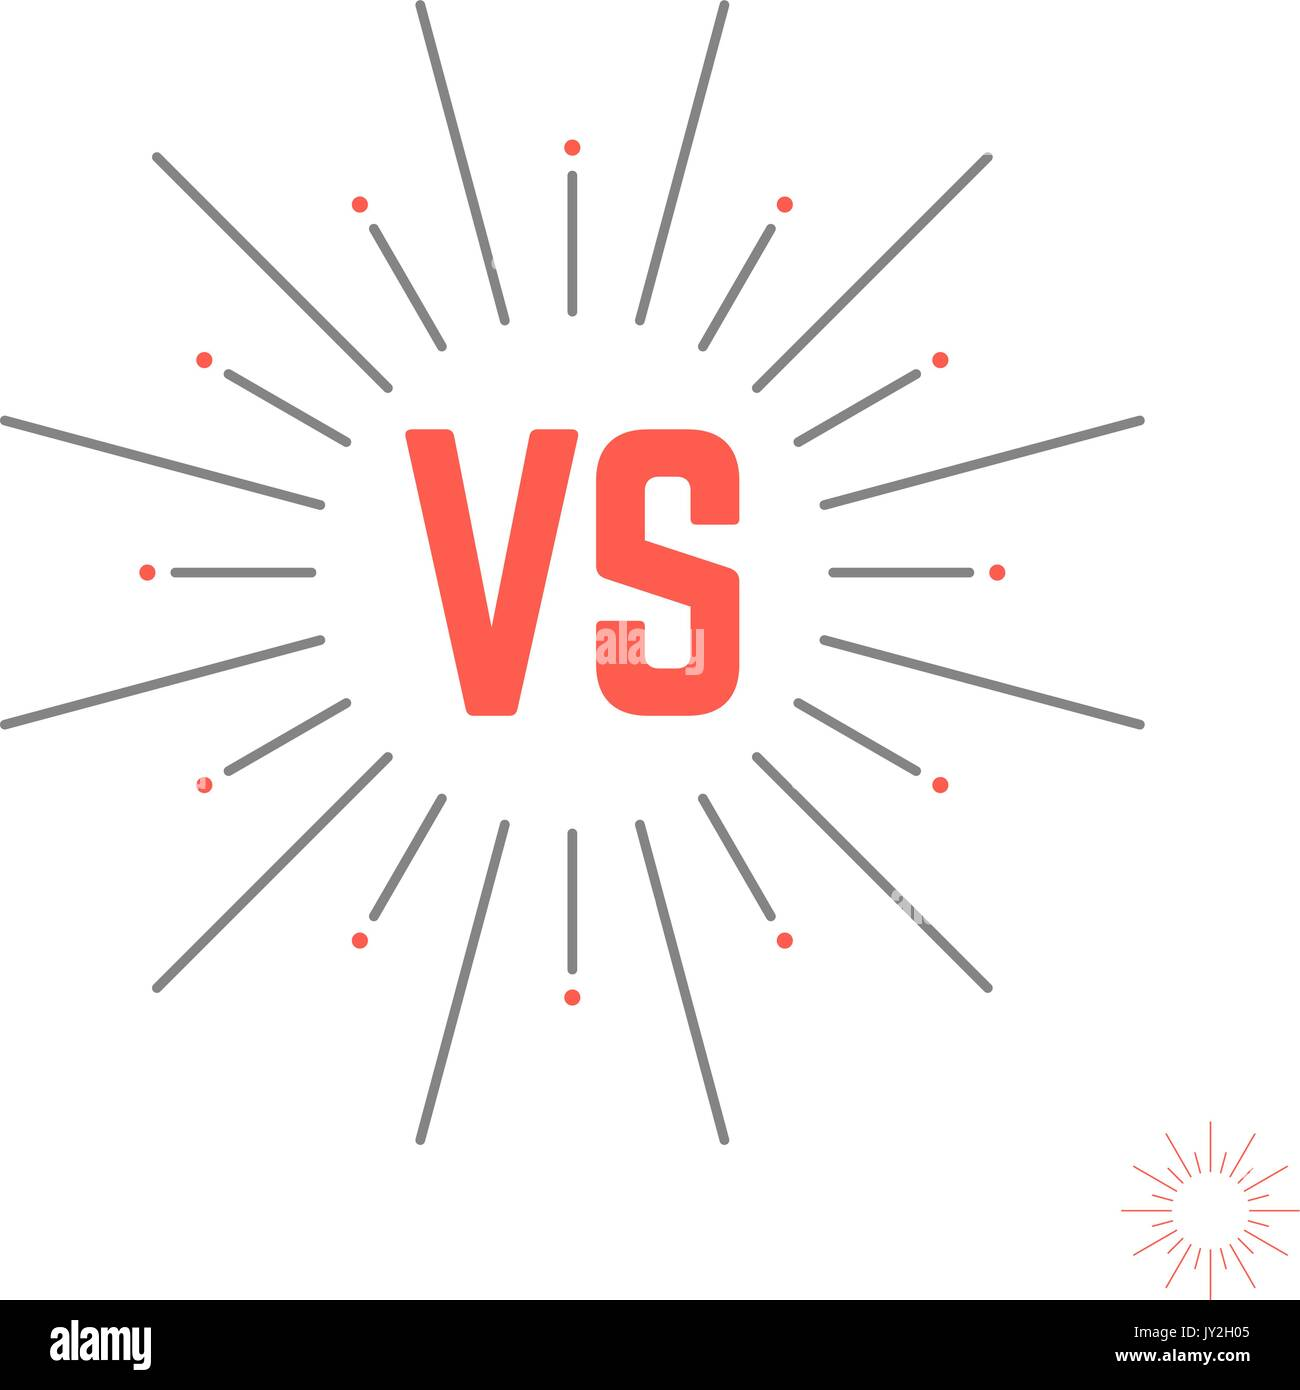 vintage versus emblem like struggle - Stock Vector